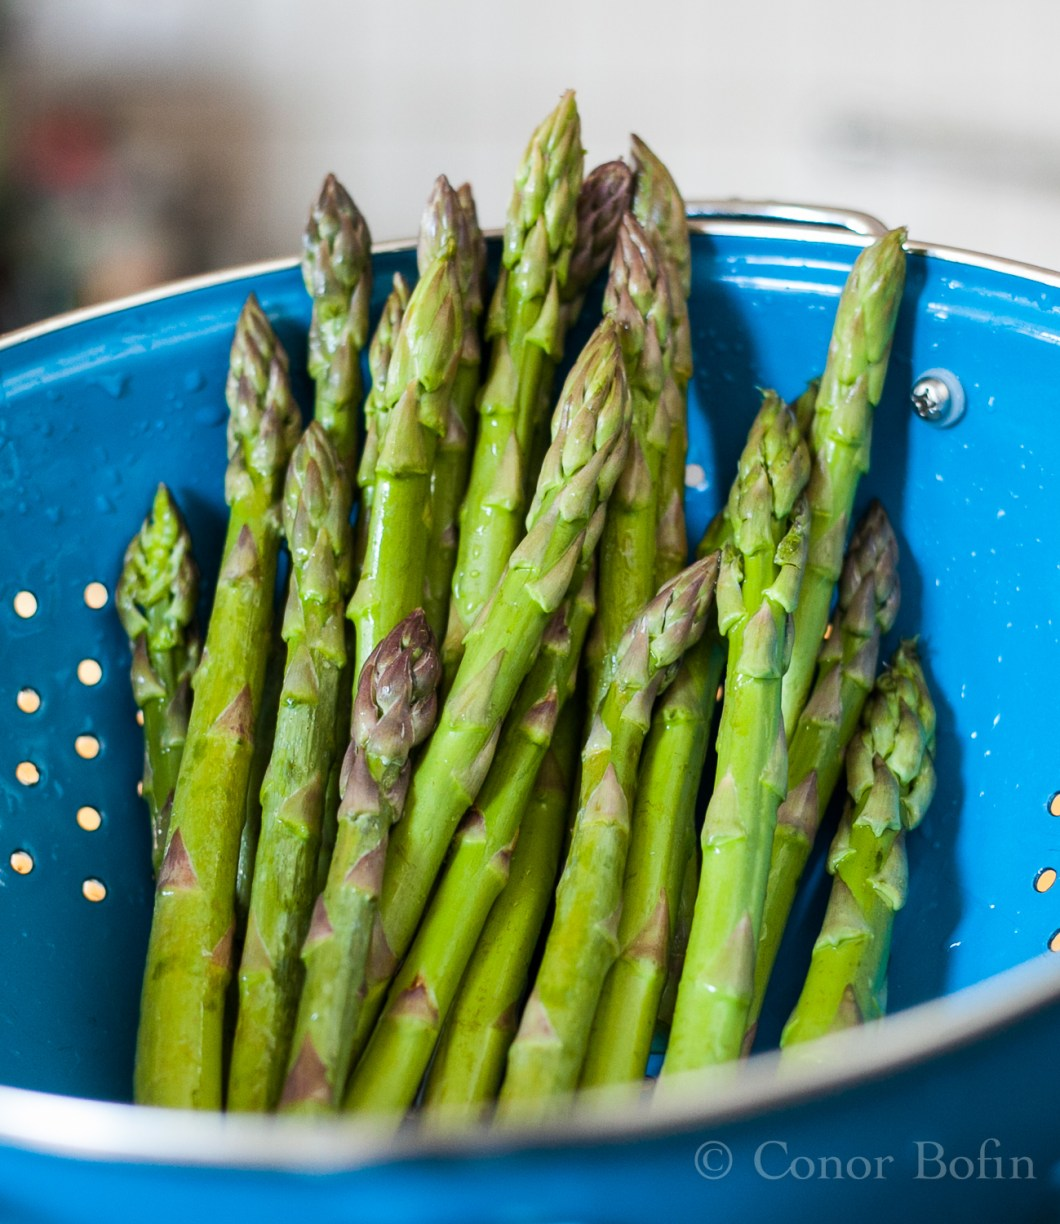 Lucky to have some beautiful asparagus on hand. This was a very lucky day.